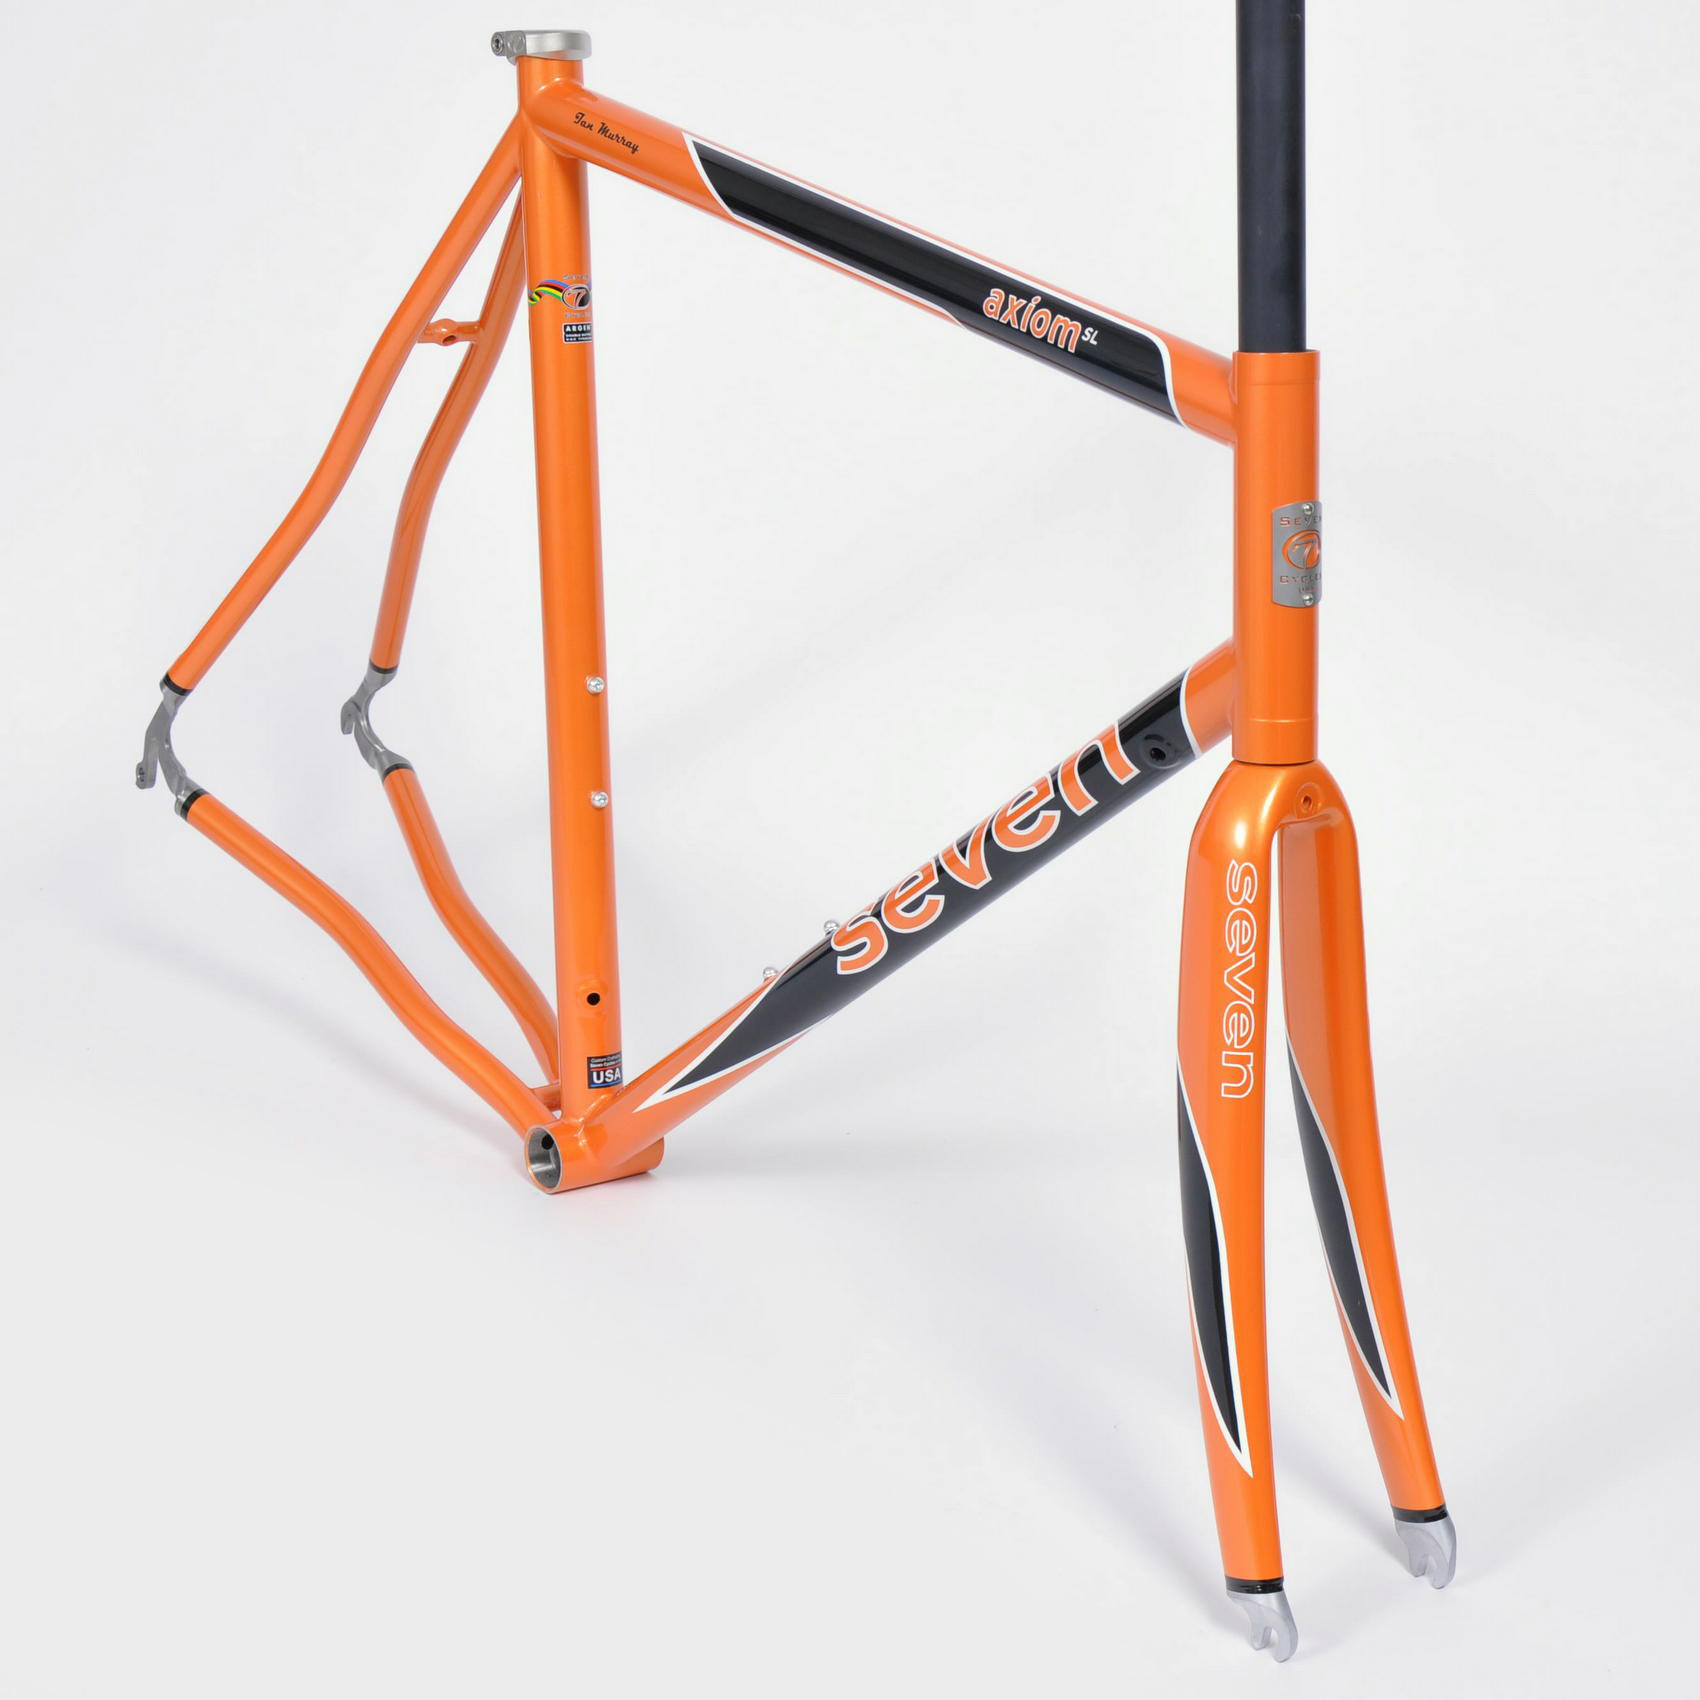 gran fondo scheme in goldfish, gloss black, and snow white